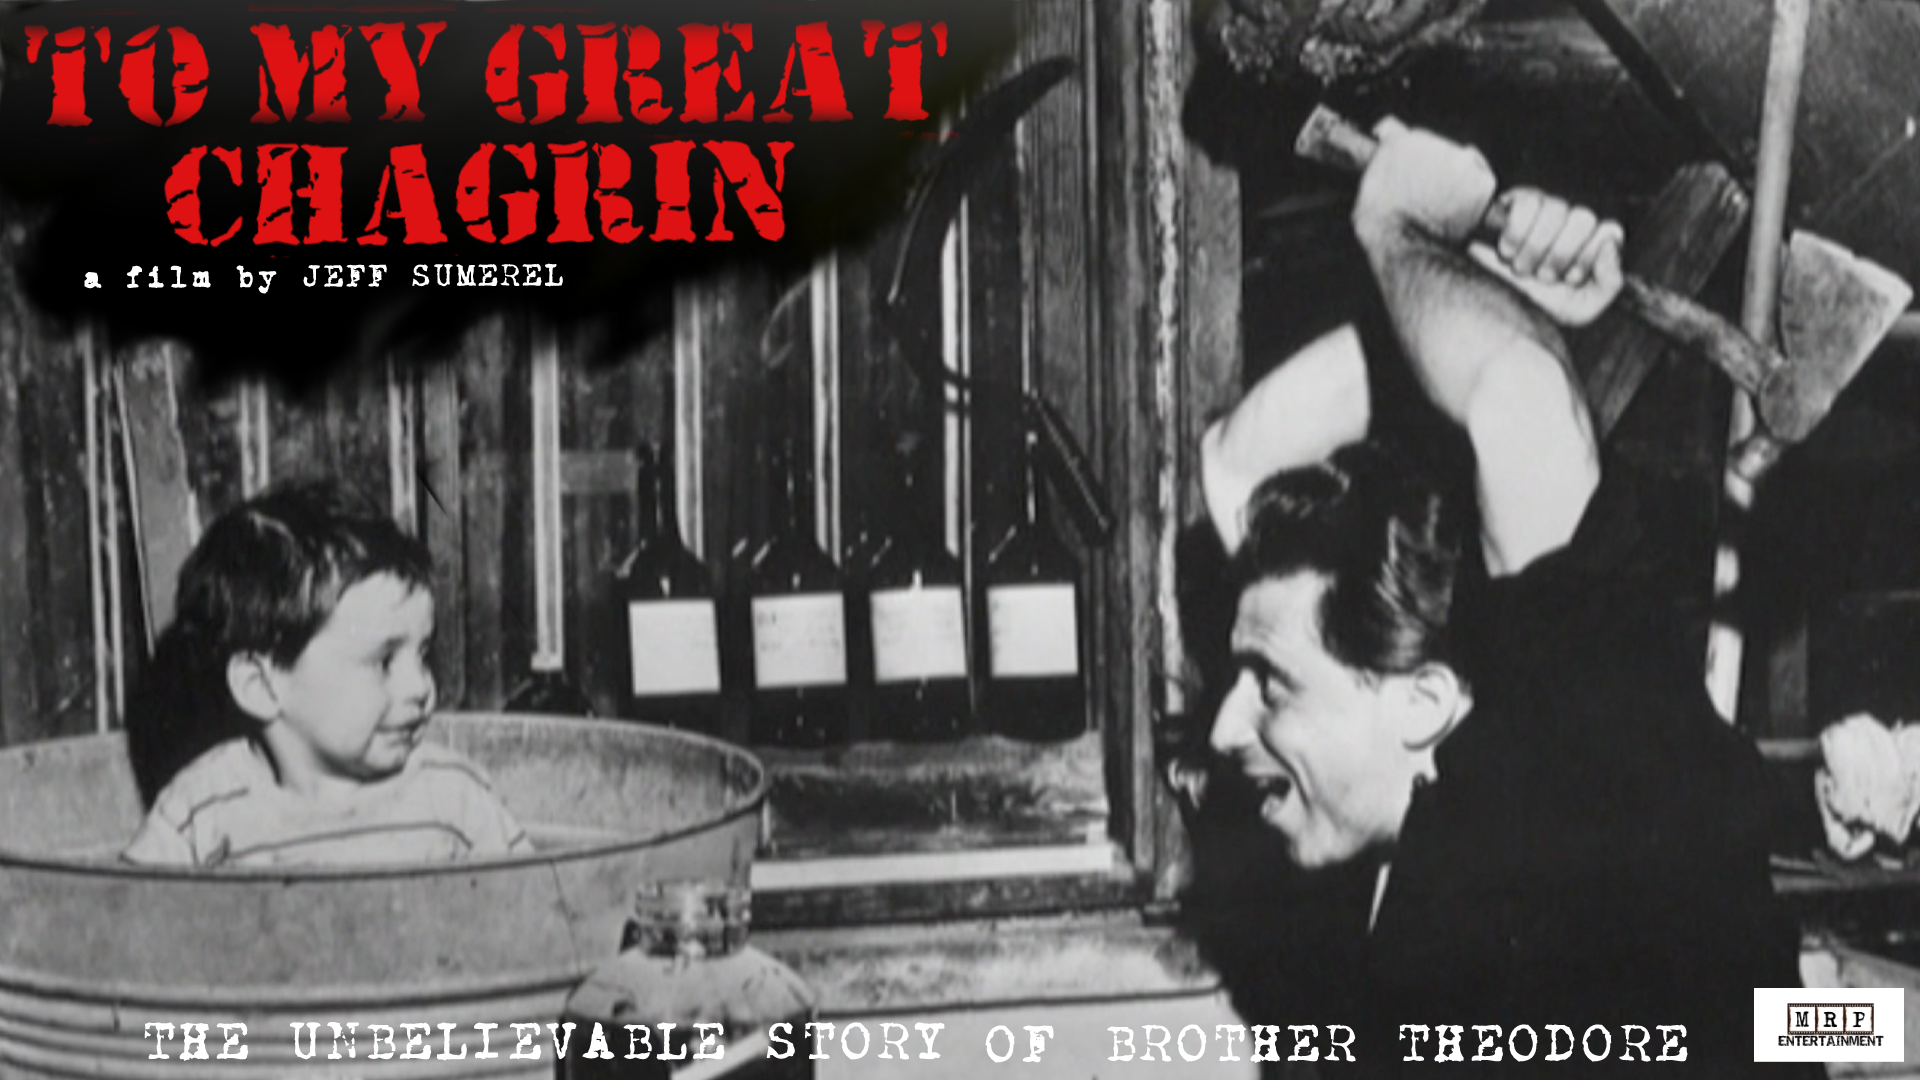 To My Great Chagrin: The Unbelievable Story of Brother Theodore